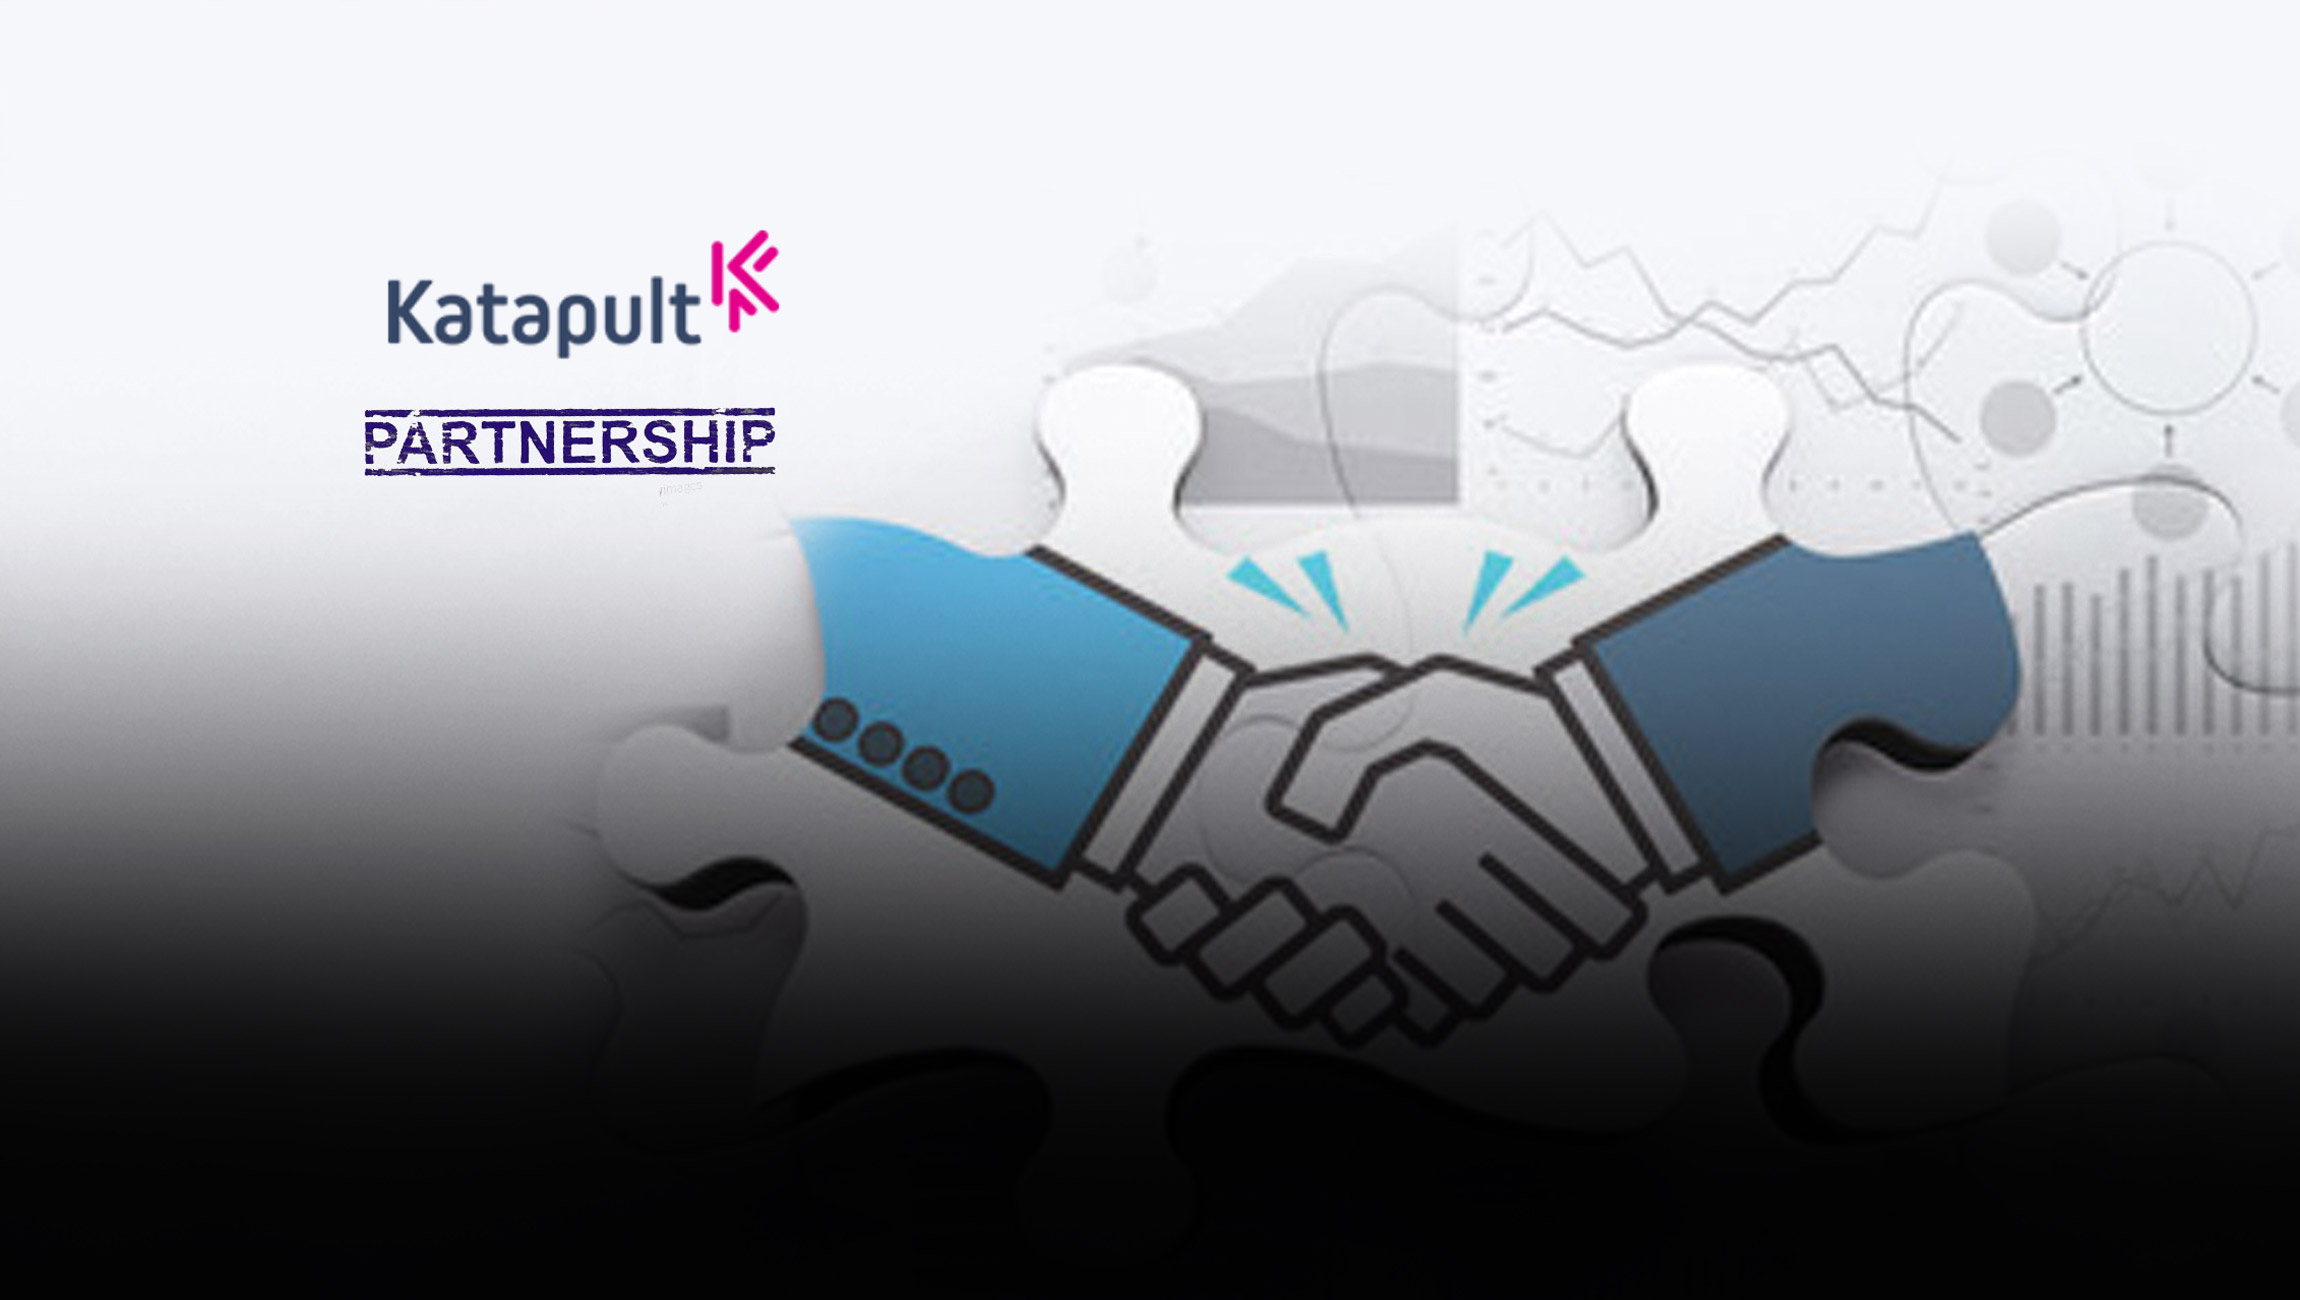 Katapult Partners With Mobile Device Retailer Wing